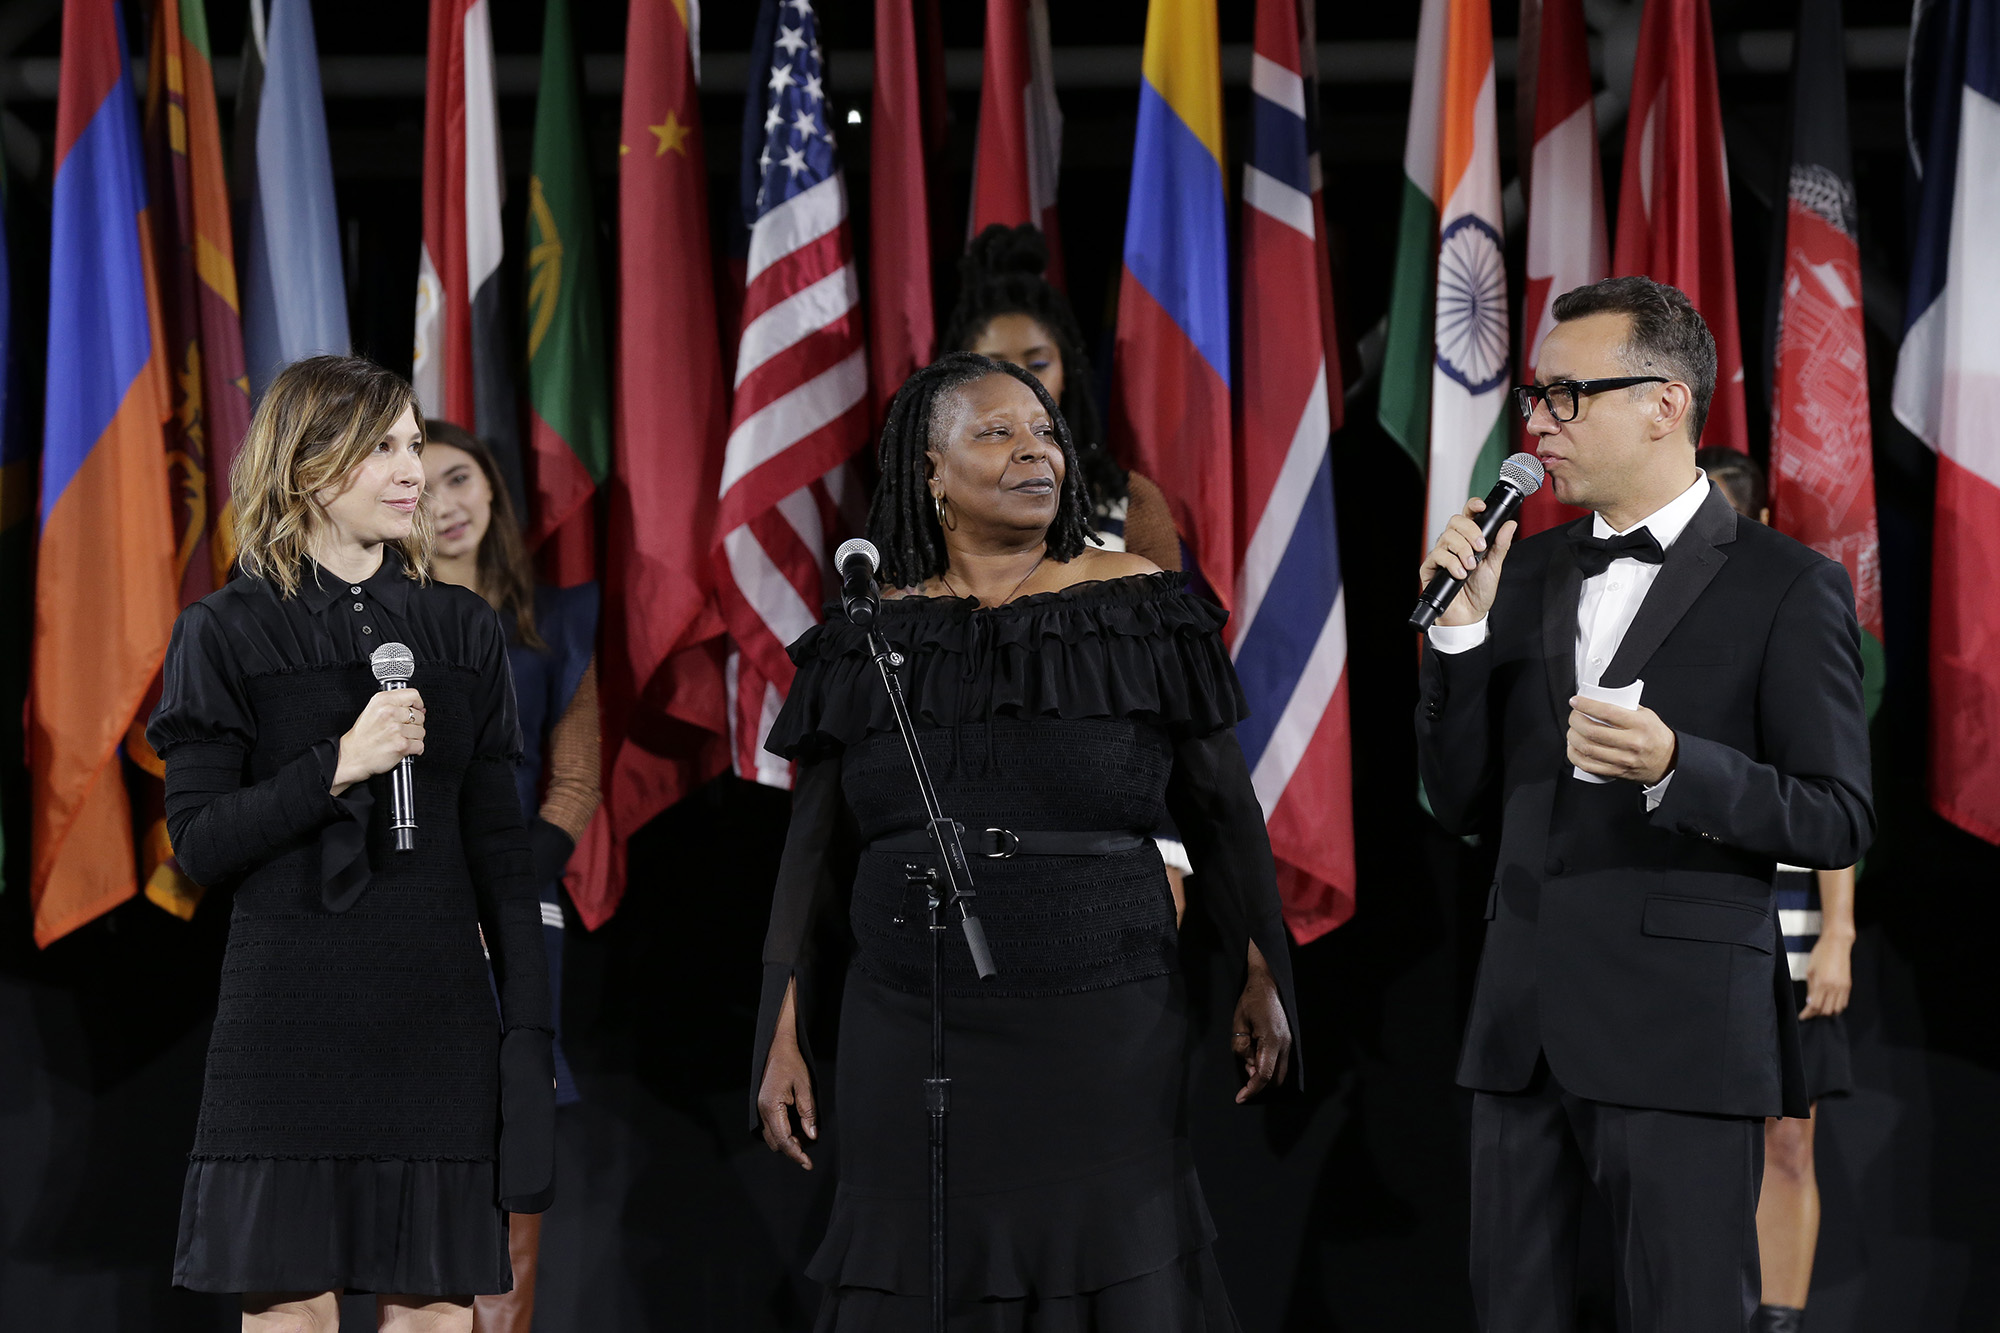 Carrie Brownstein, Whoopi Goldberg, and Fred Armisen speak onstage during the Opening Ceremony fashion show during New York Fashion Week at Jacob Javits Center on September 11, 2016 in New York City.  (Photo by JP Yim/Getty Images)